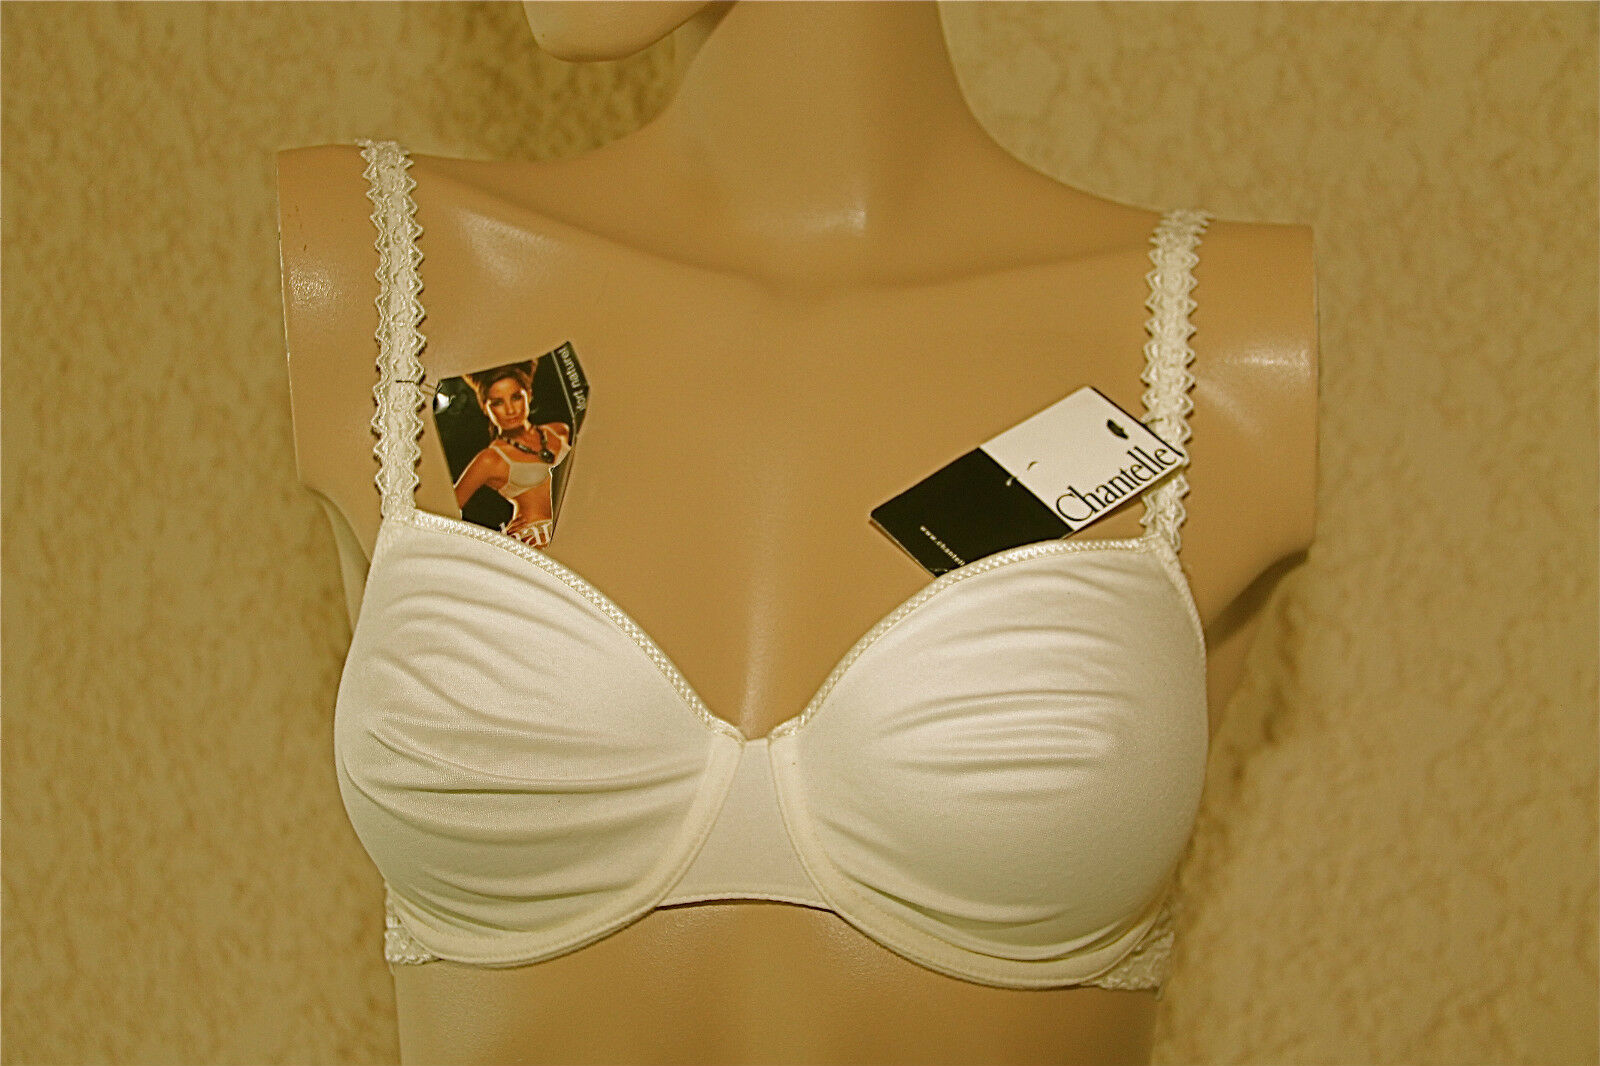 Bra white bra fittings CHANTELLE 85D new label VAL